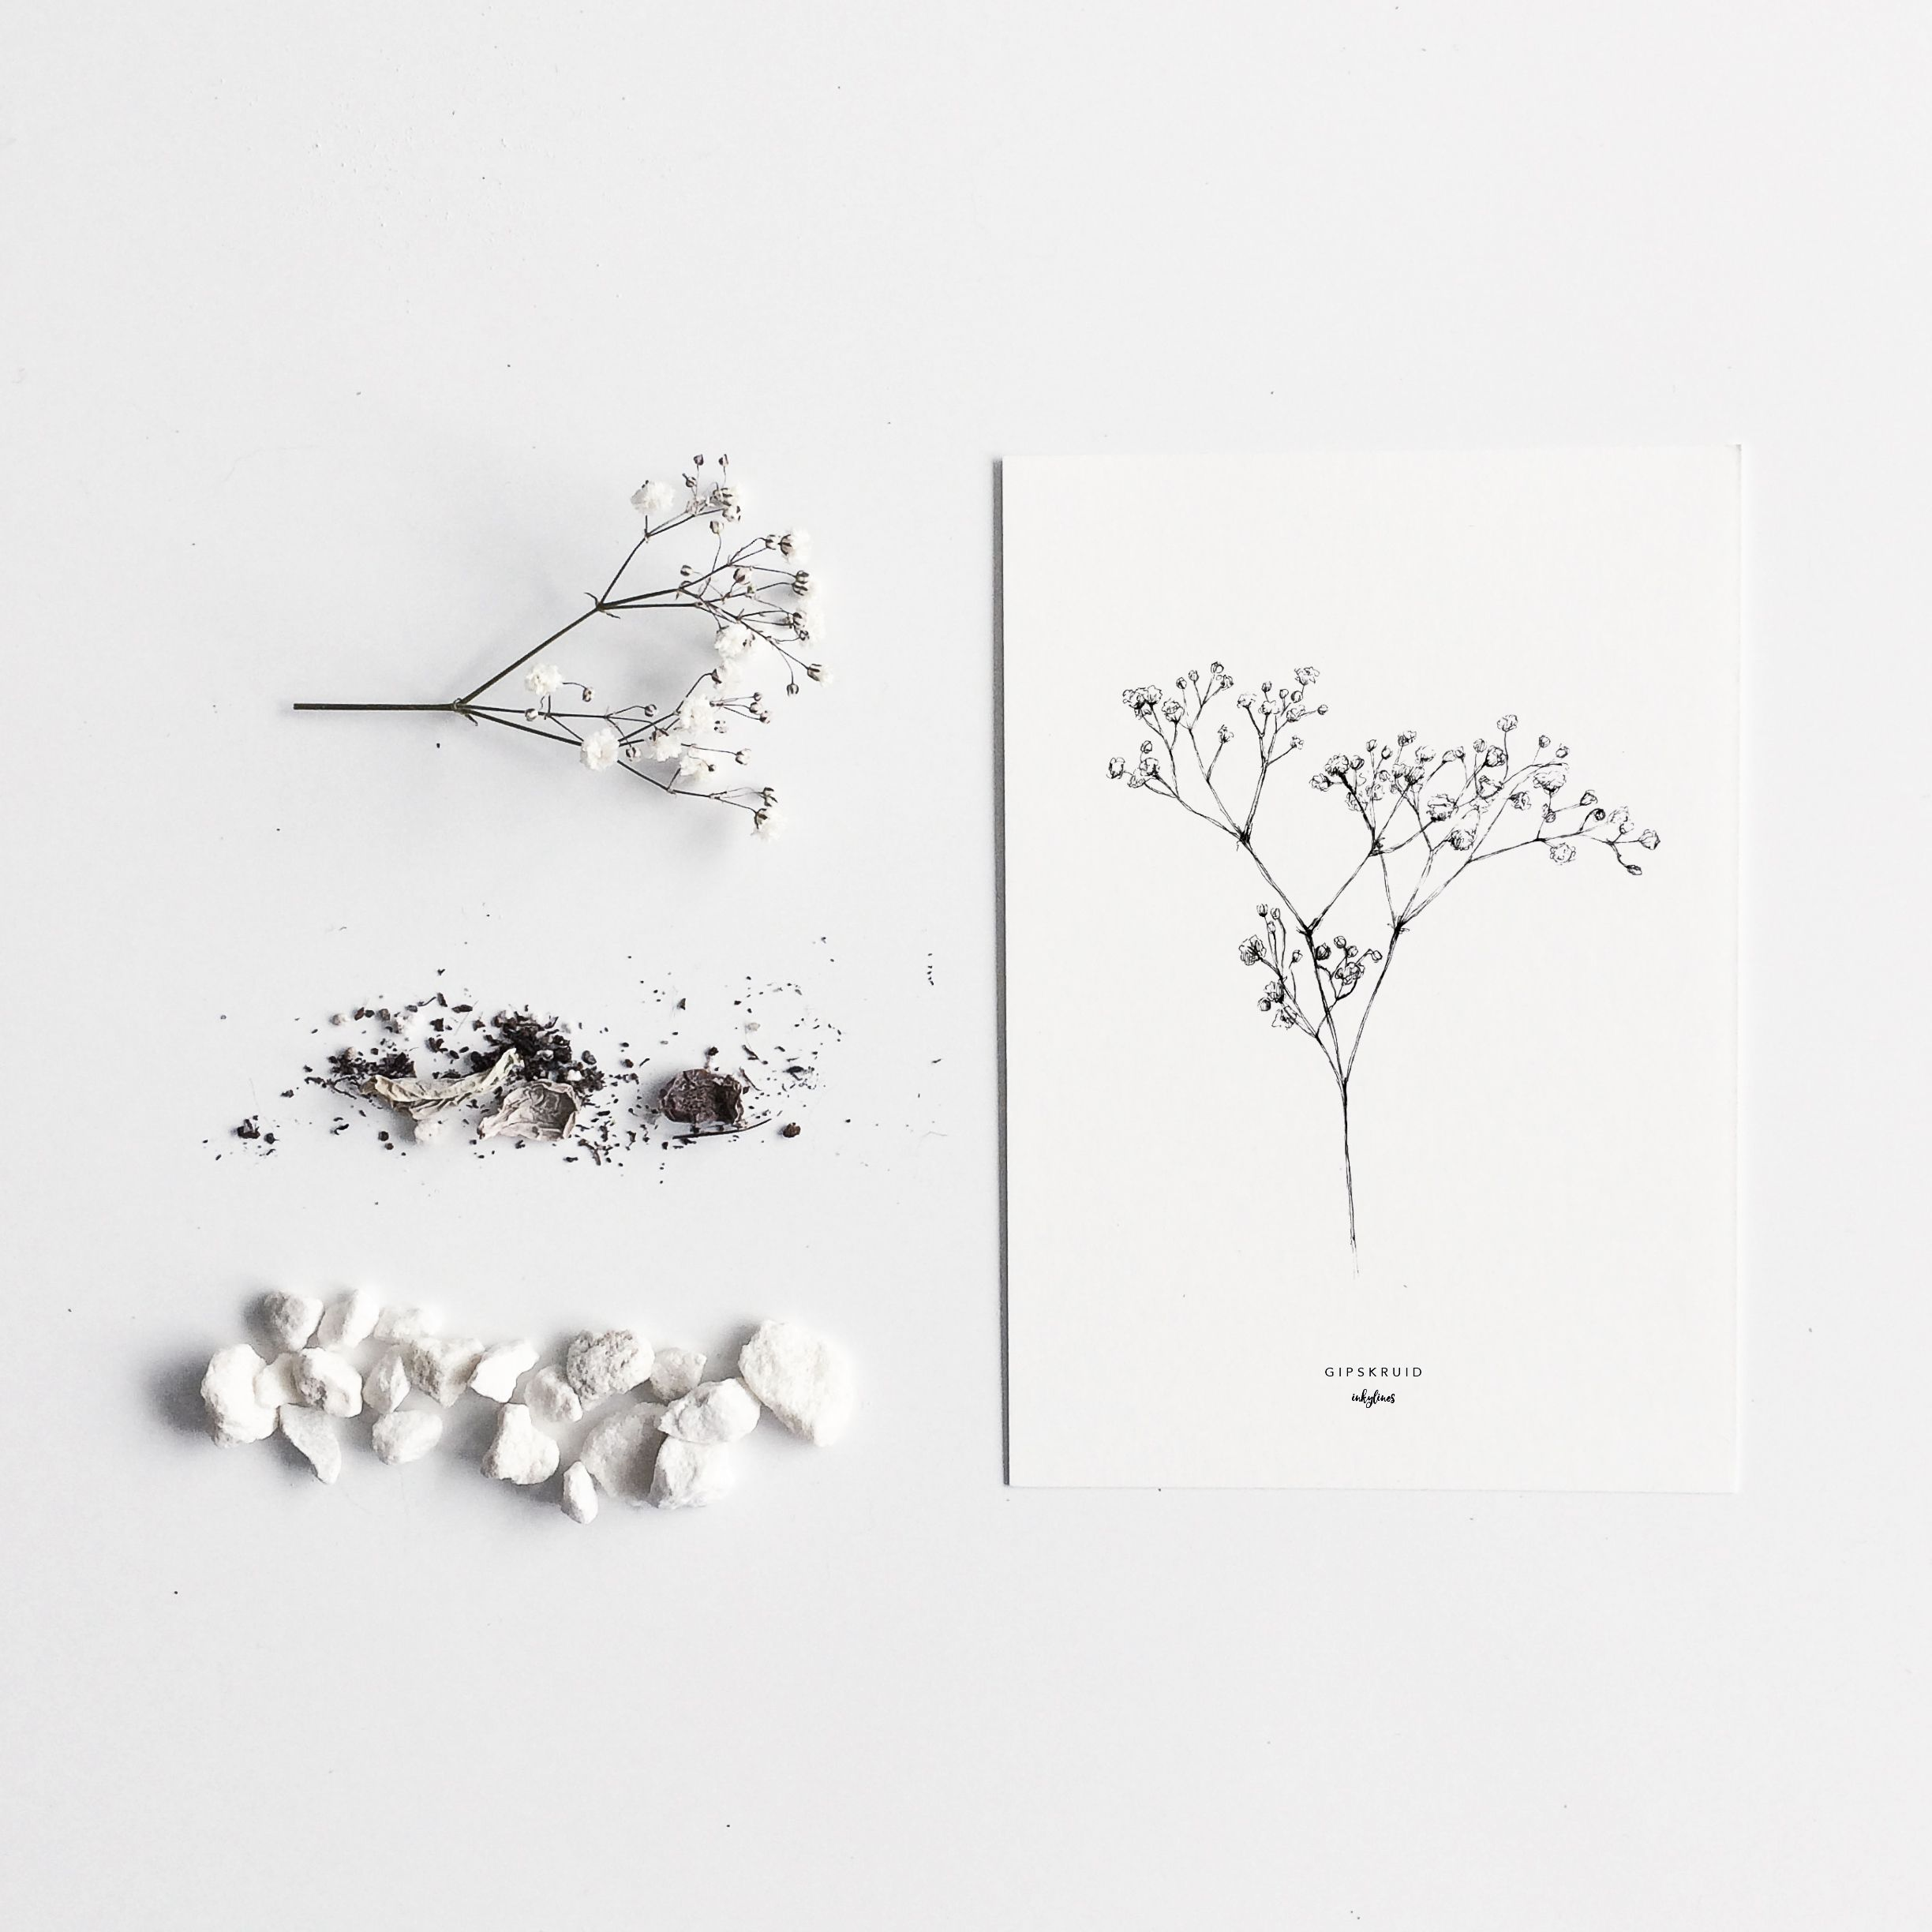 drawing of gypsophila also known as babys breath its name derives from the meaning